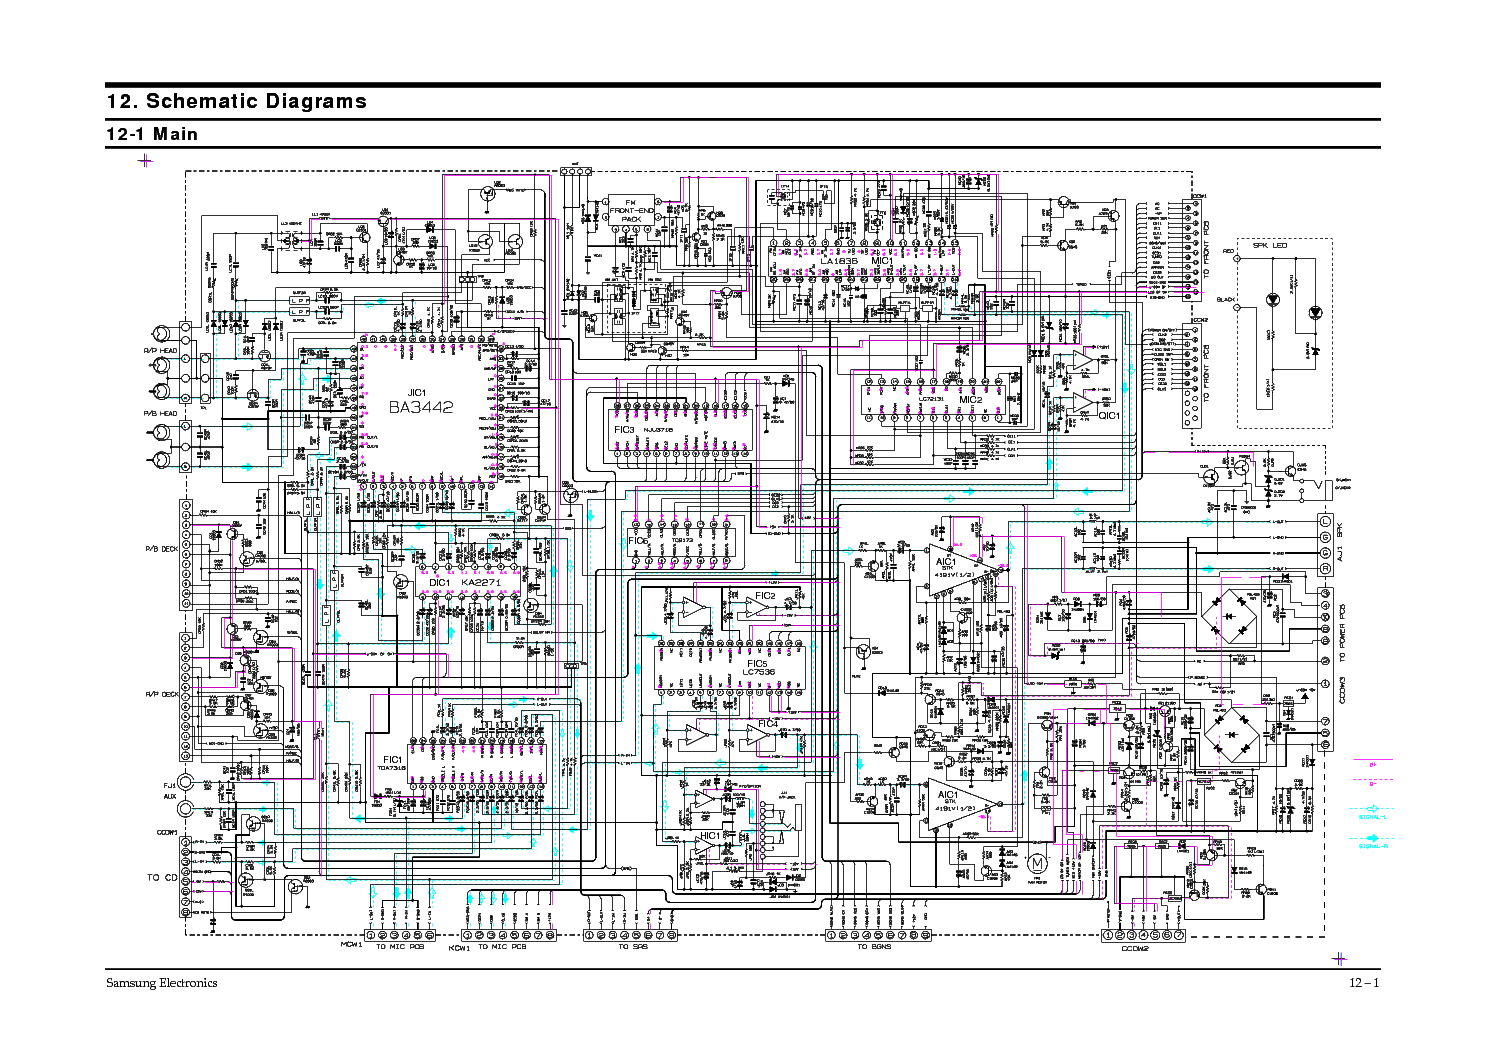 samsung ht c455 mea service manual download schematics eeprom repair info for electronics experts. Black Bedroom Furniture Sets. Home Design Ideas